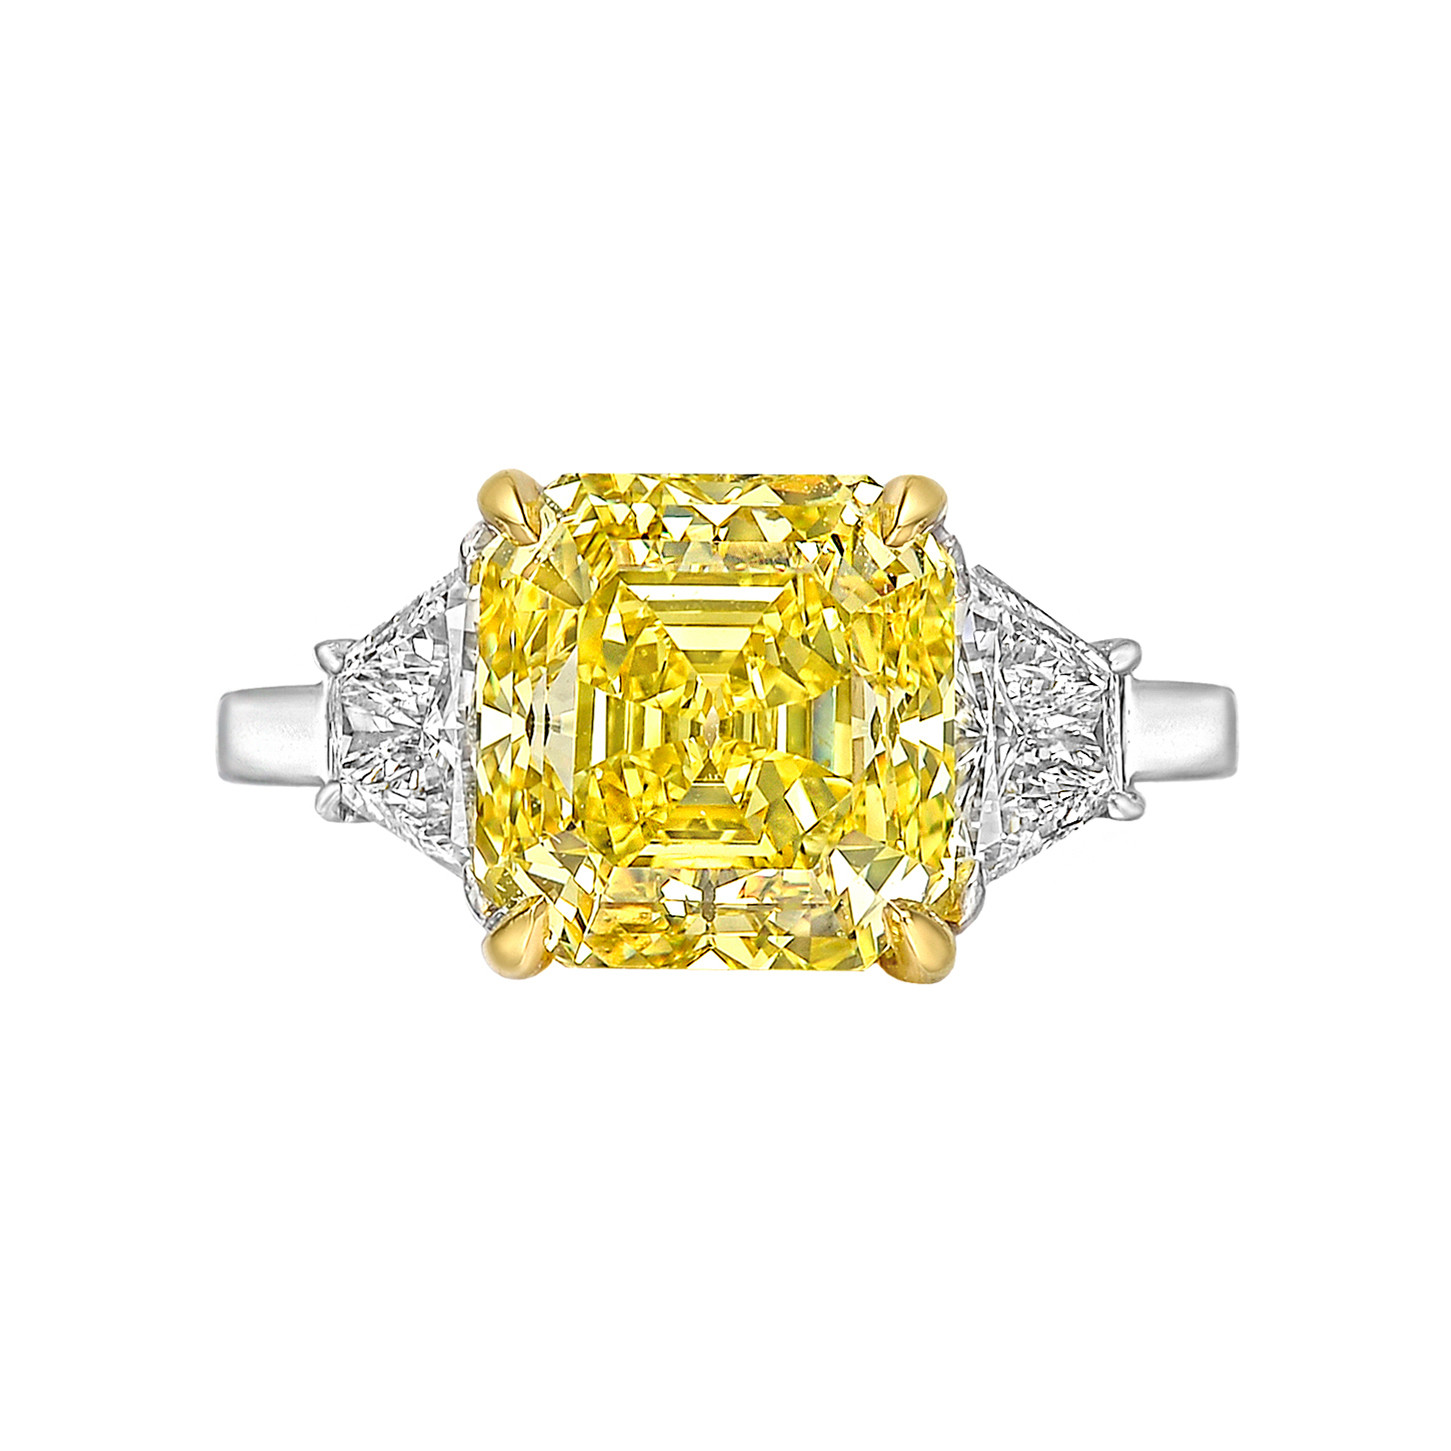 5.03ct Fancy Vivid Yellow Diamond Ring